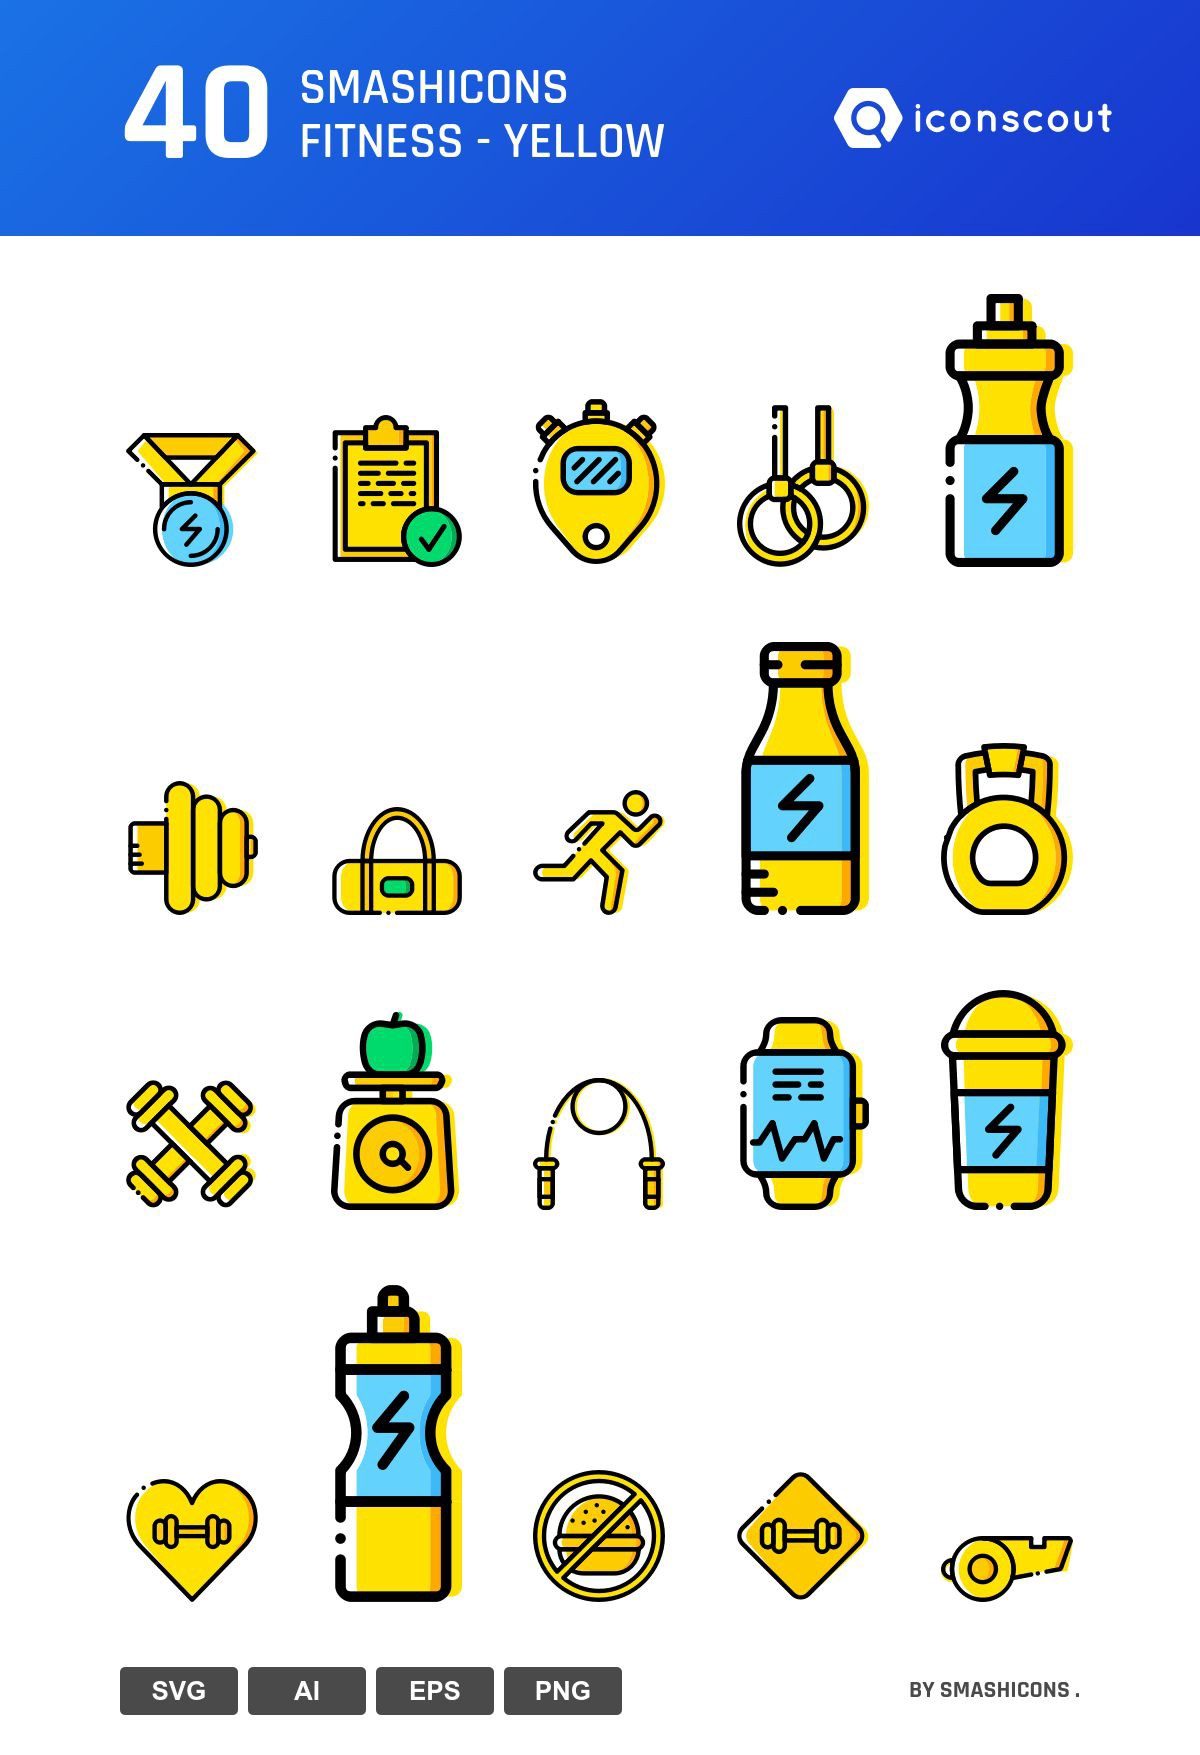 Smashicons Fitness - Yellow icons by Smashicons .